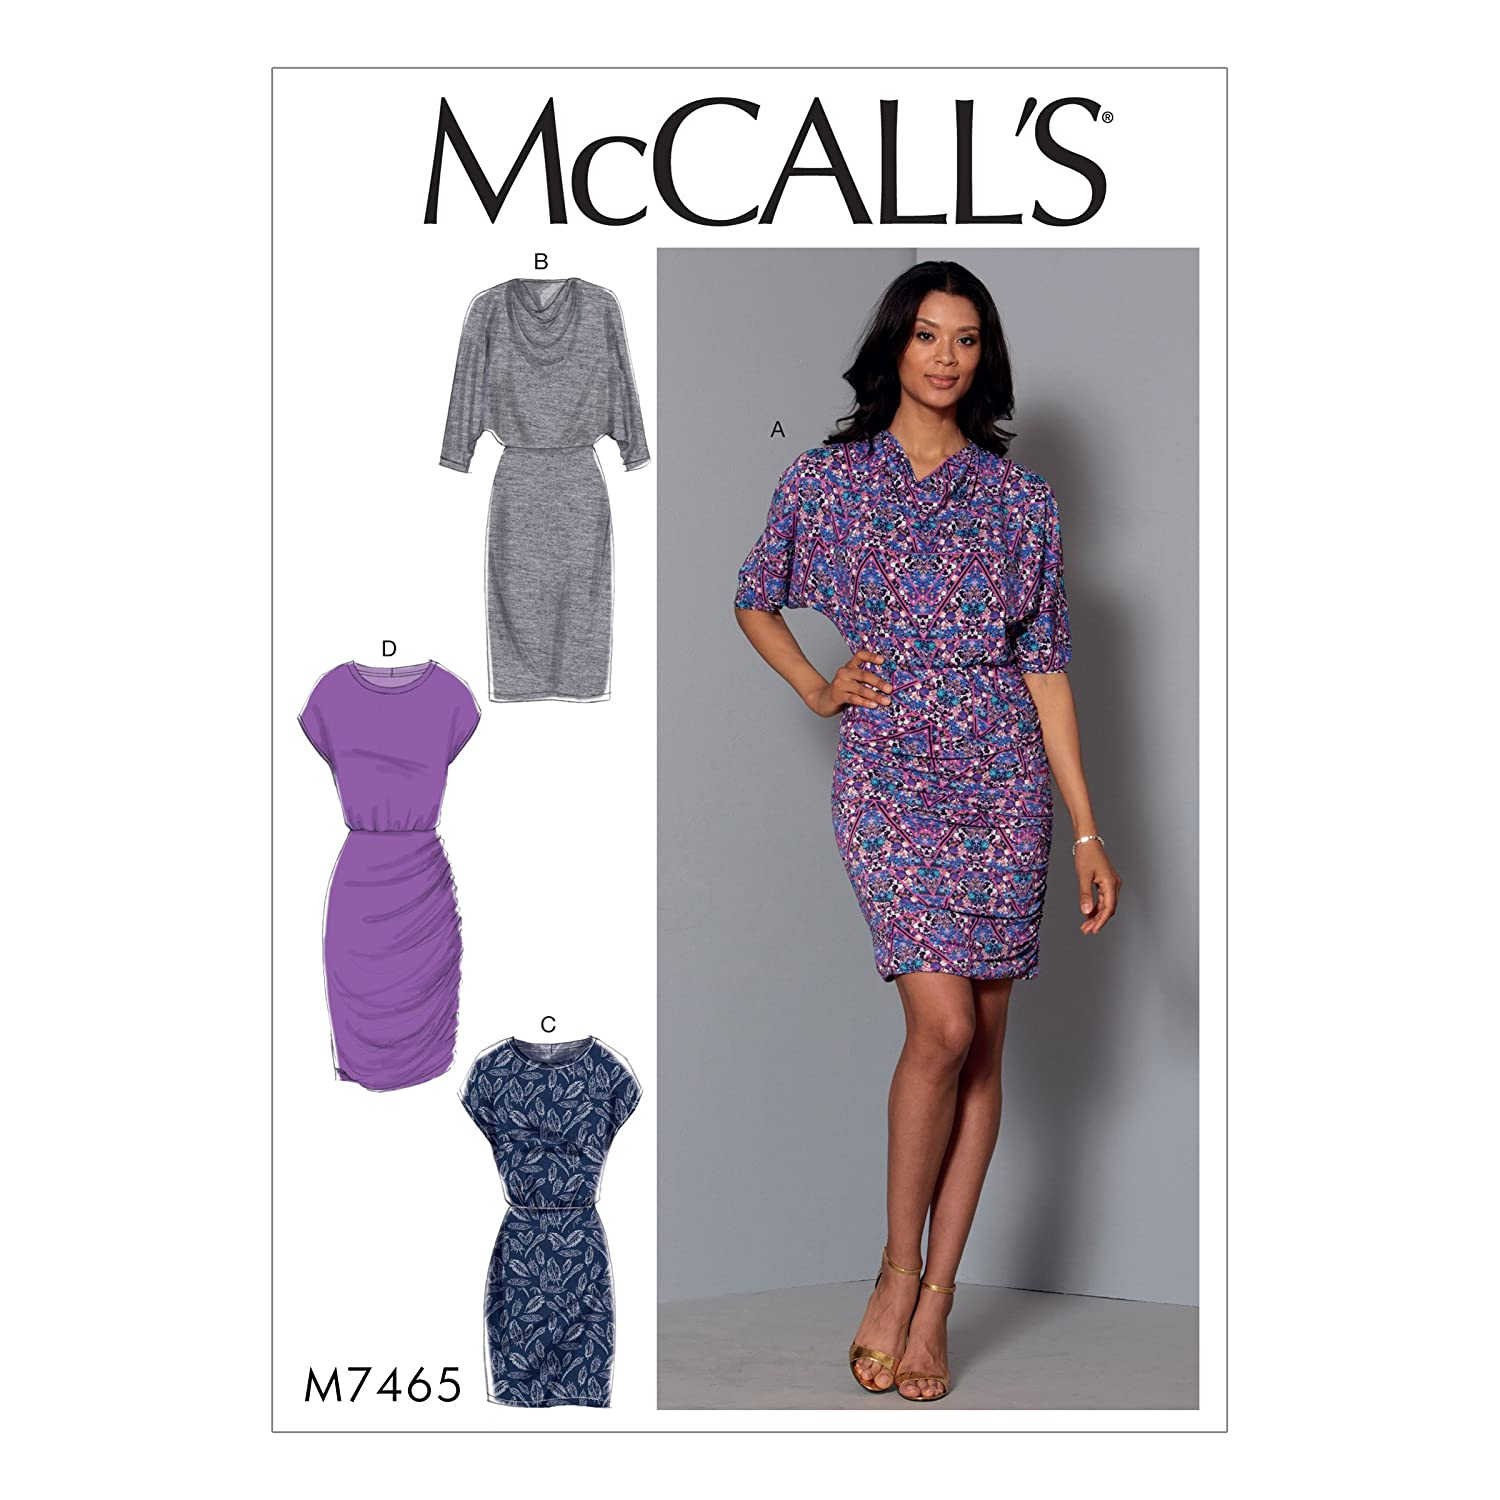 McCall's Patterns A5 Misses Dresses, Multi-Colour, Sizes 6-14 The McCall Pattern Company M7465A50